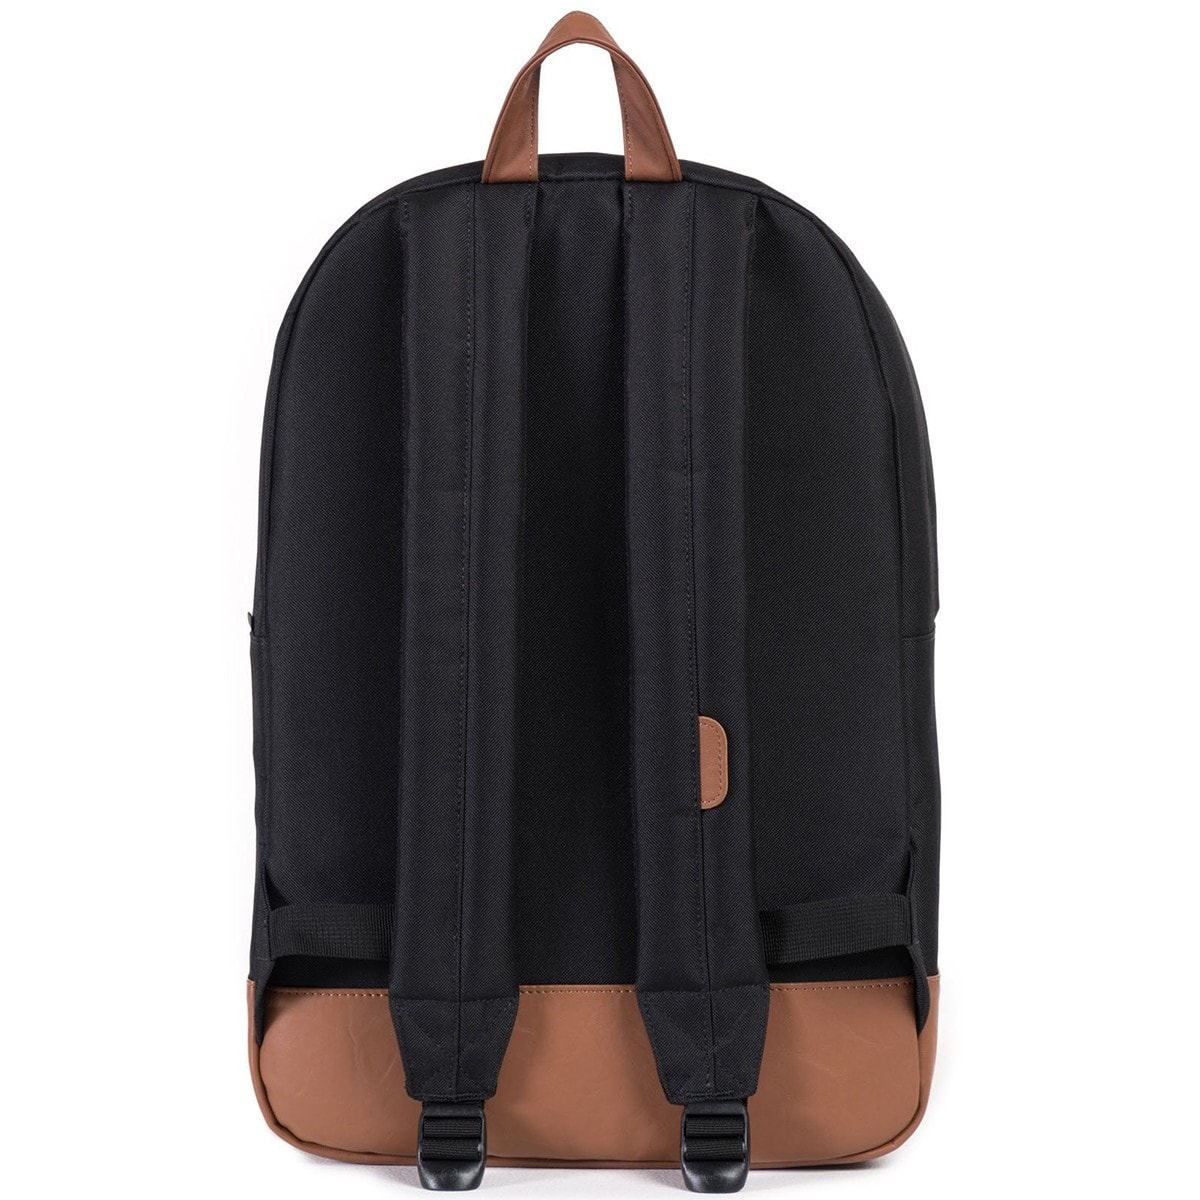 Рюкзак Herschel Heritage Black/Tan Synthetic Leather 21,5l